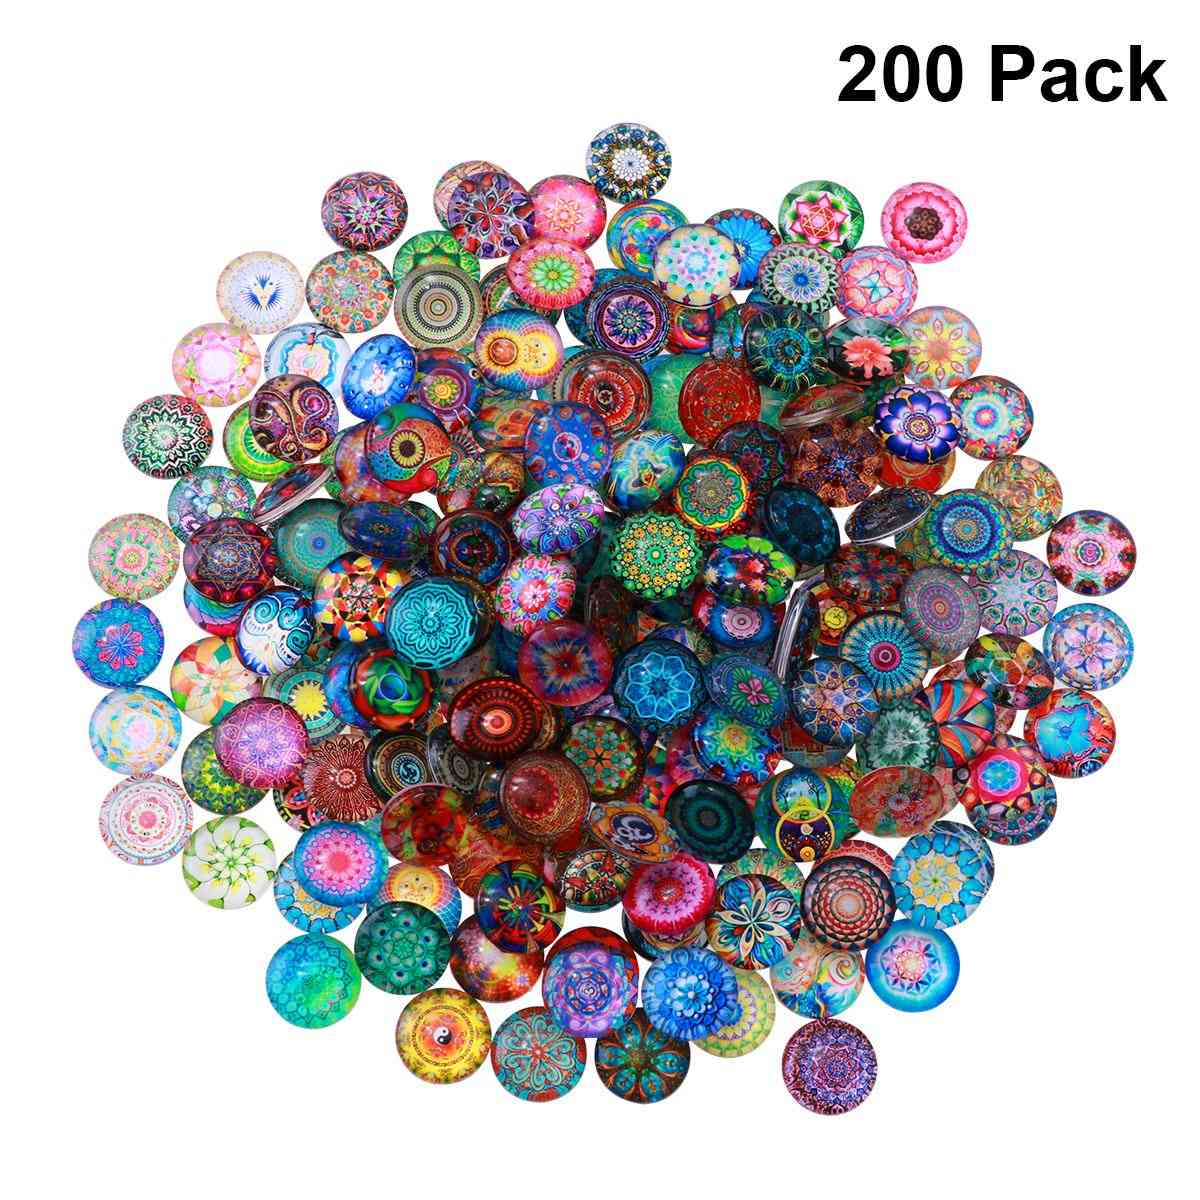 Mixed Round Mosaic Tiles Glass Decoration For Crafts, Jewelry Making